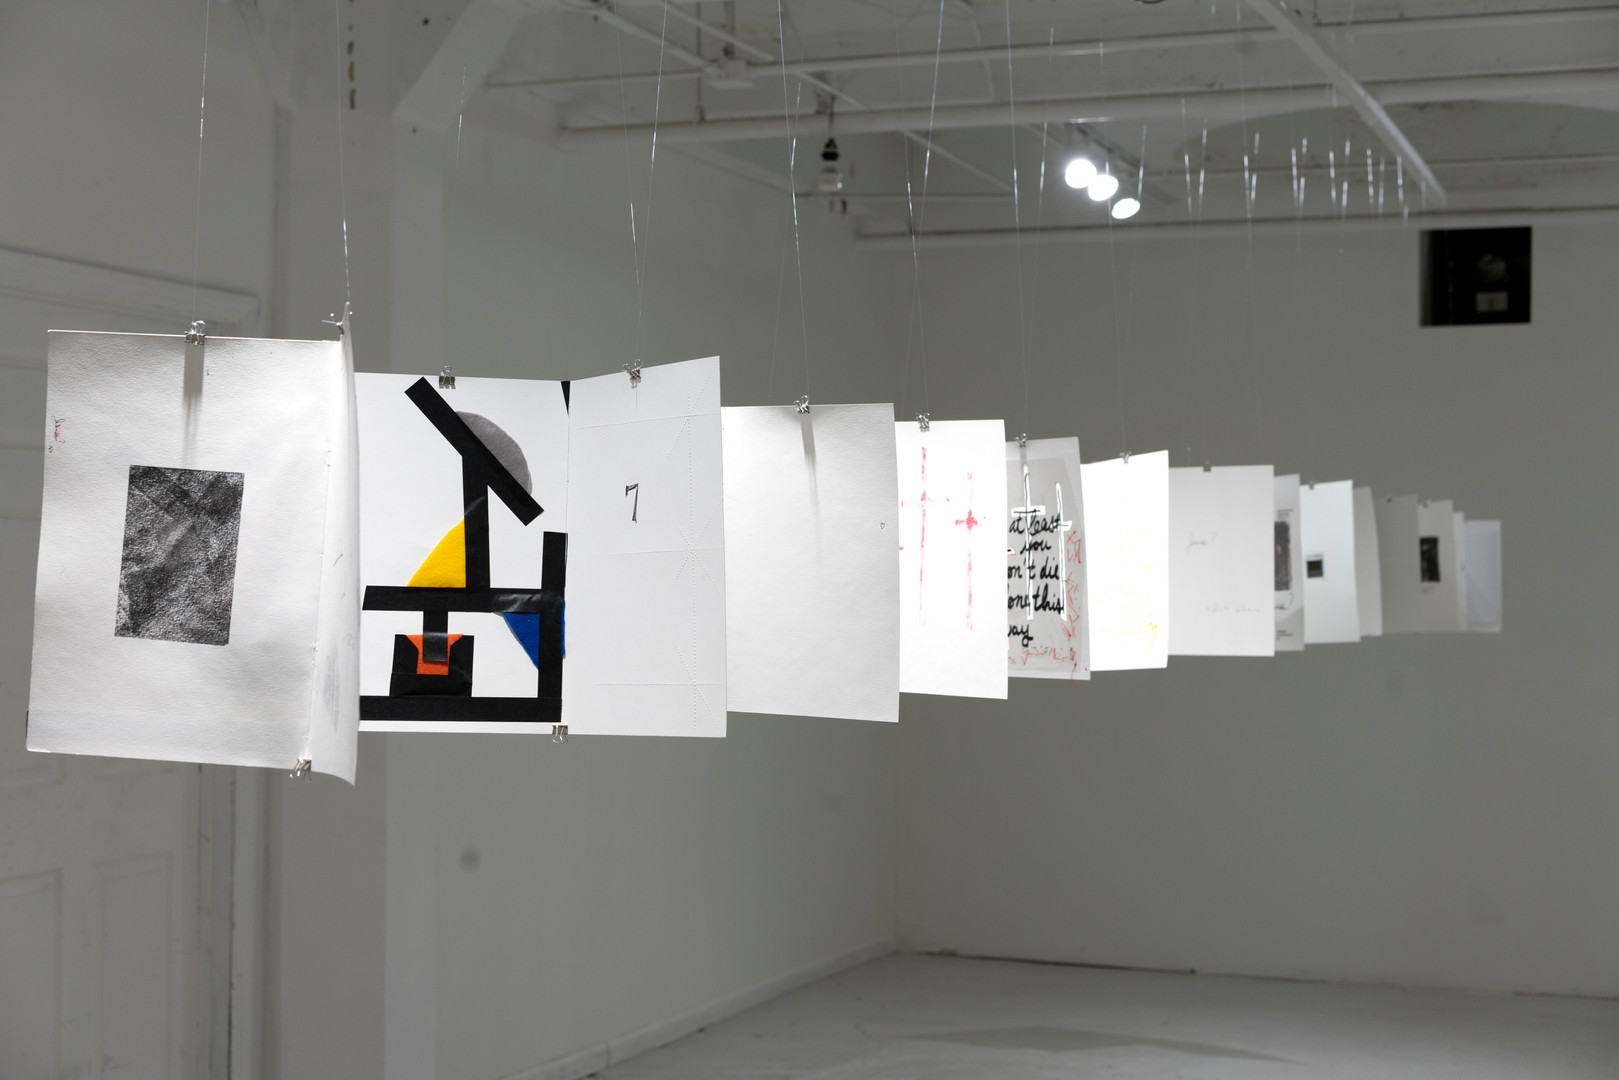 Shared Loneliness installation